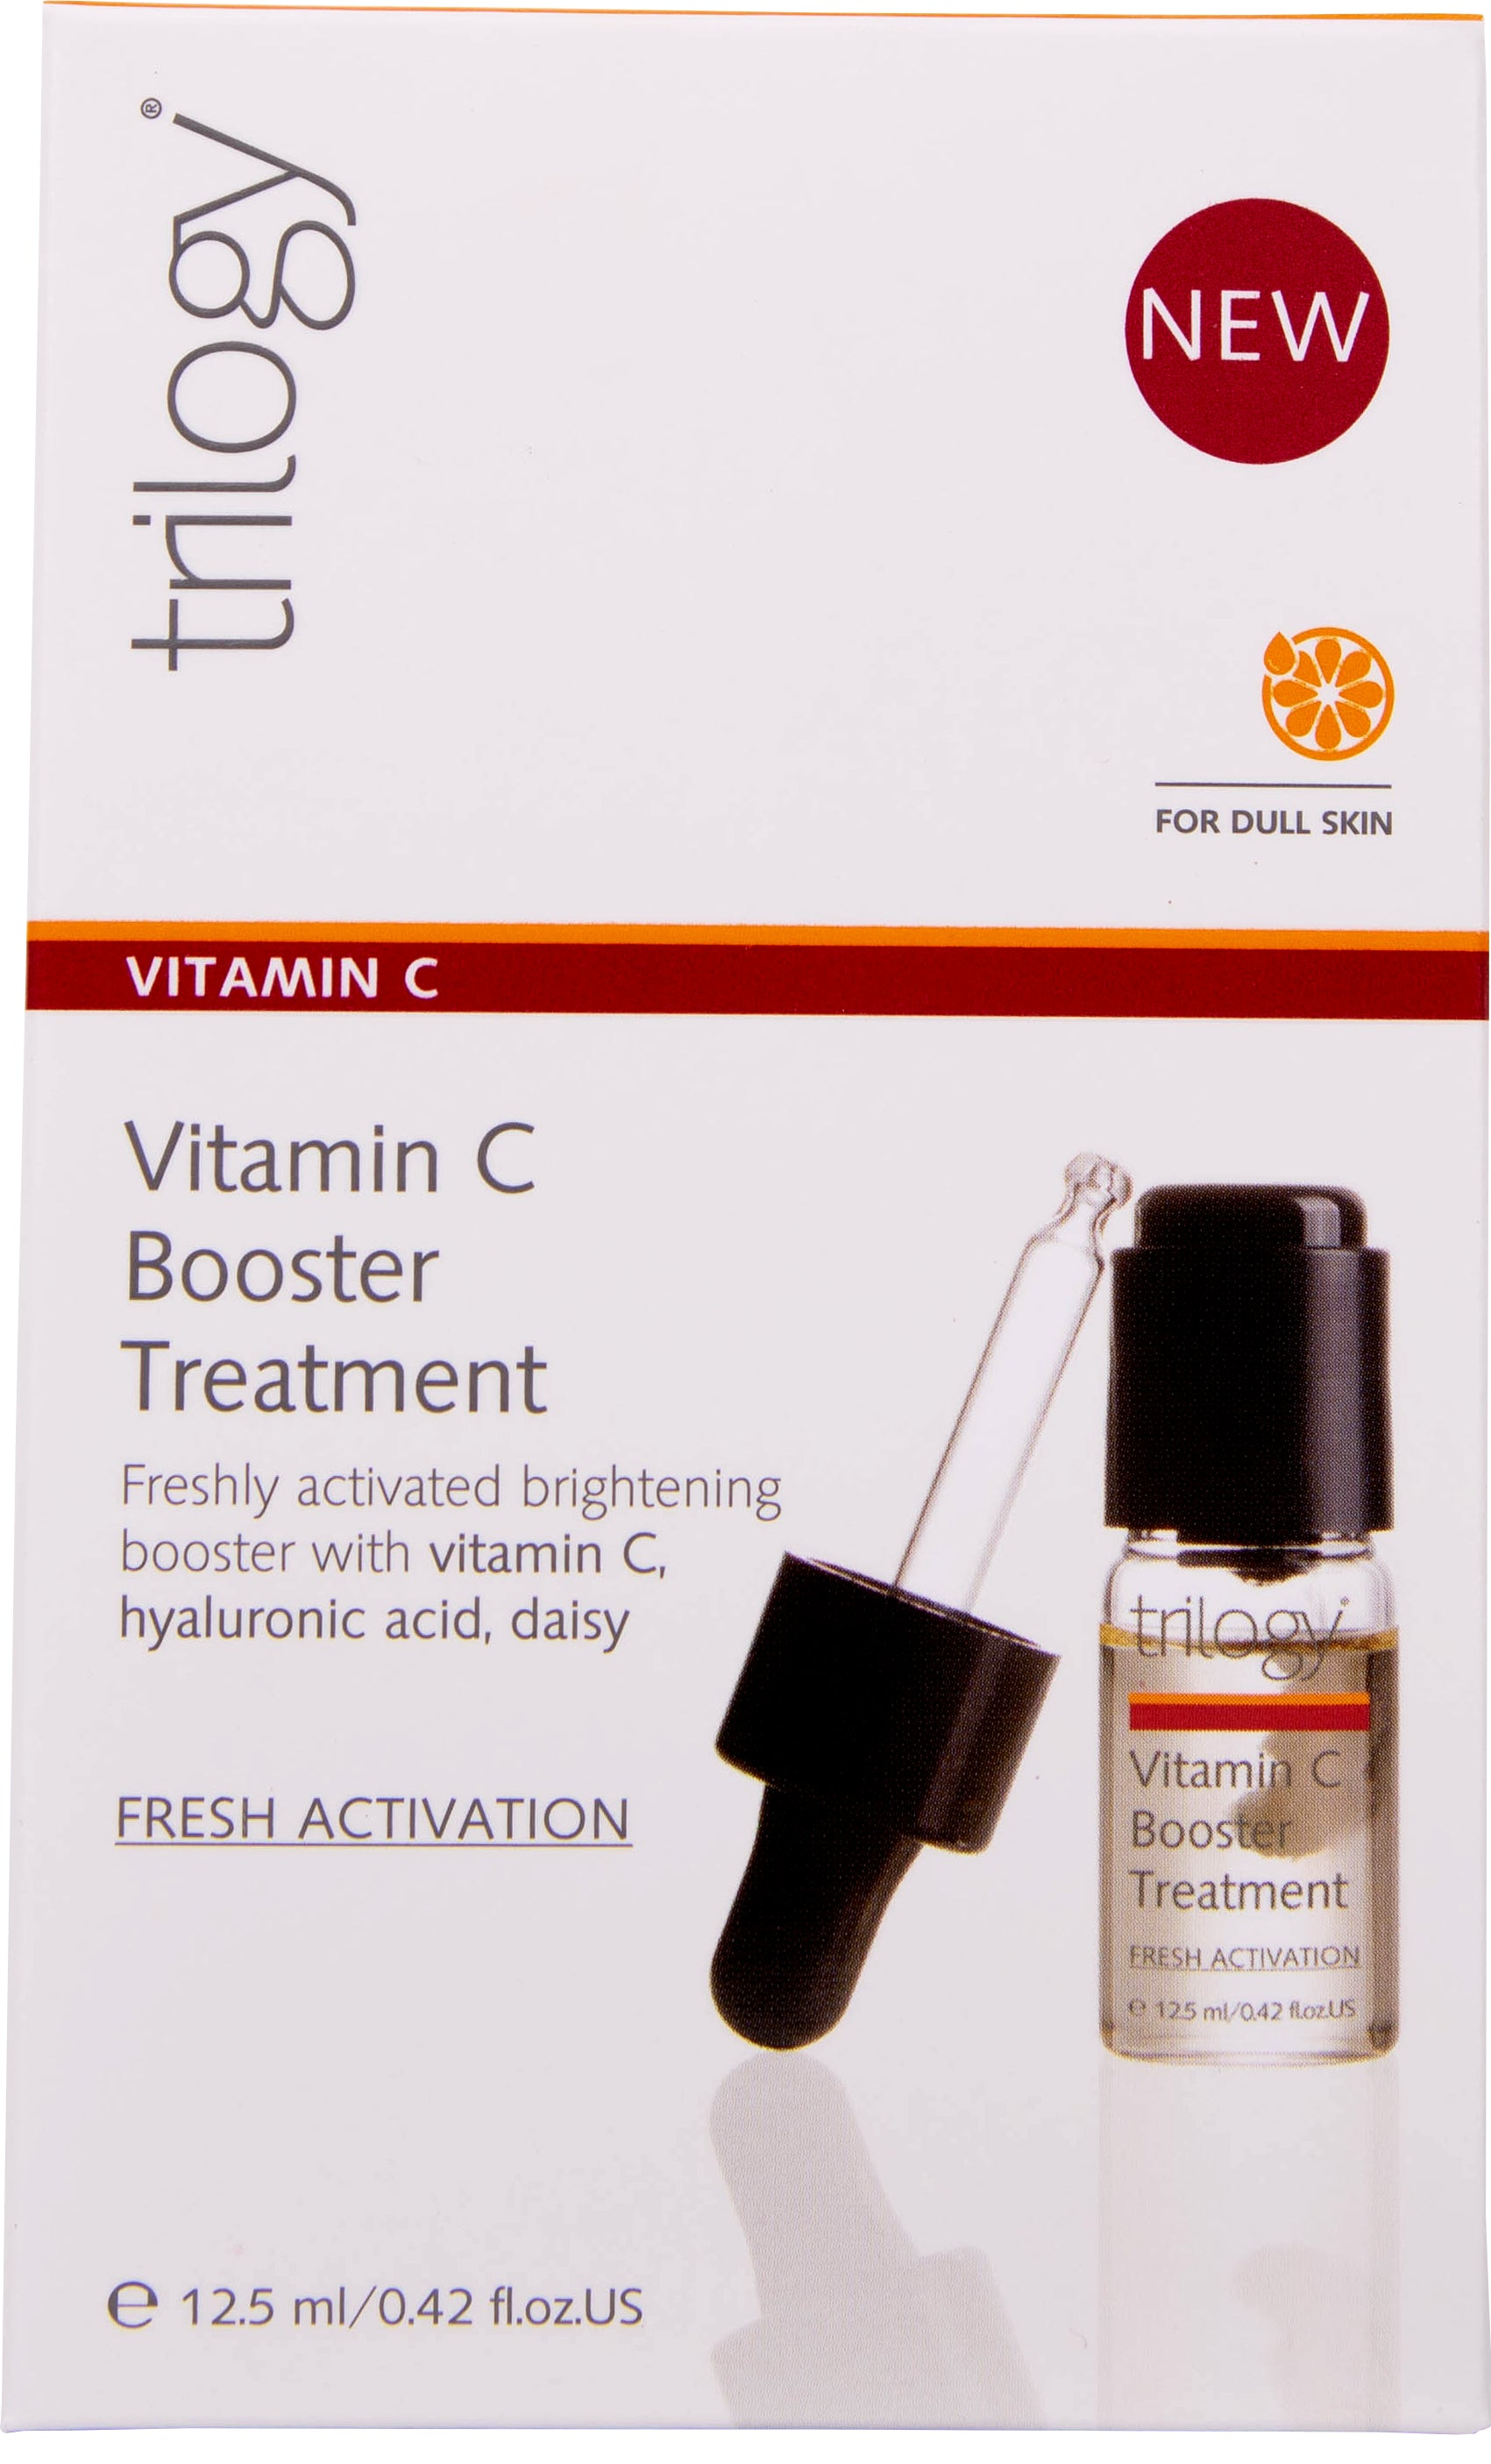 Trilogy Vitamin C Booster Treatment